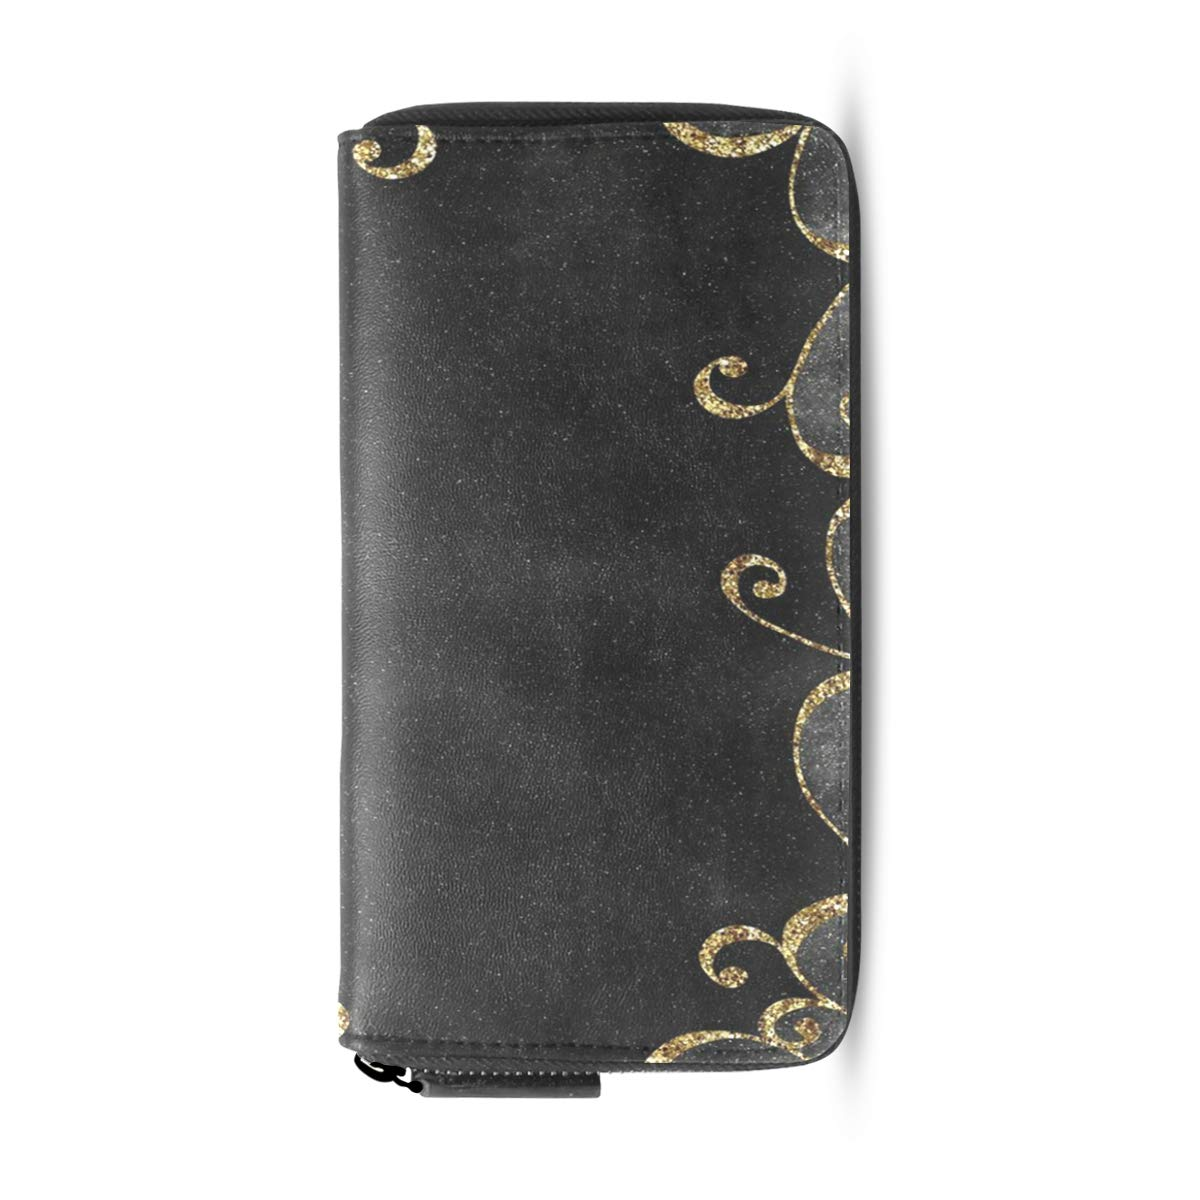 Womens Wallets Black And Gold Backgrounds Leather Passport Wallet Coin Purse Girls Handbags